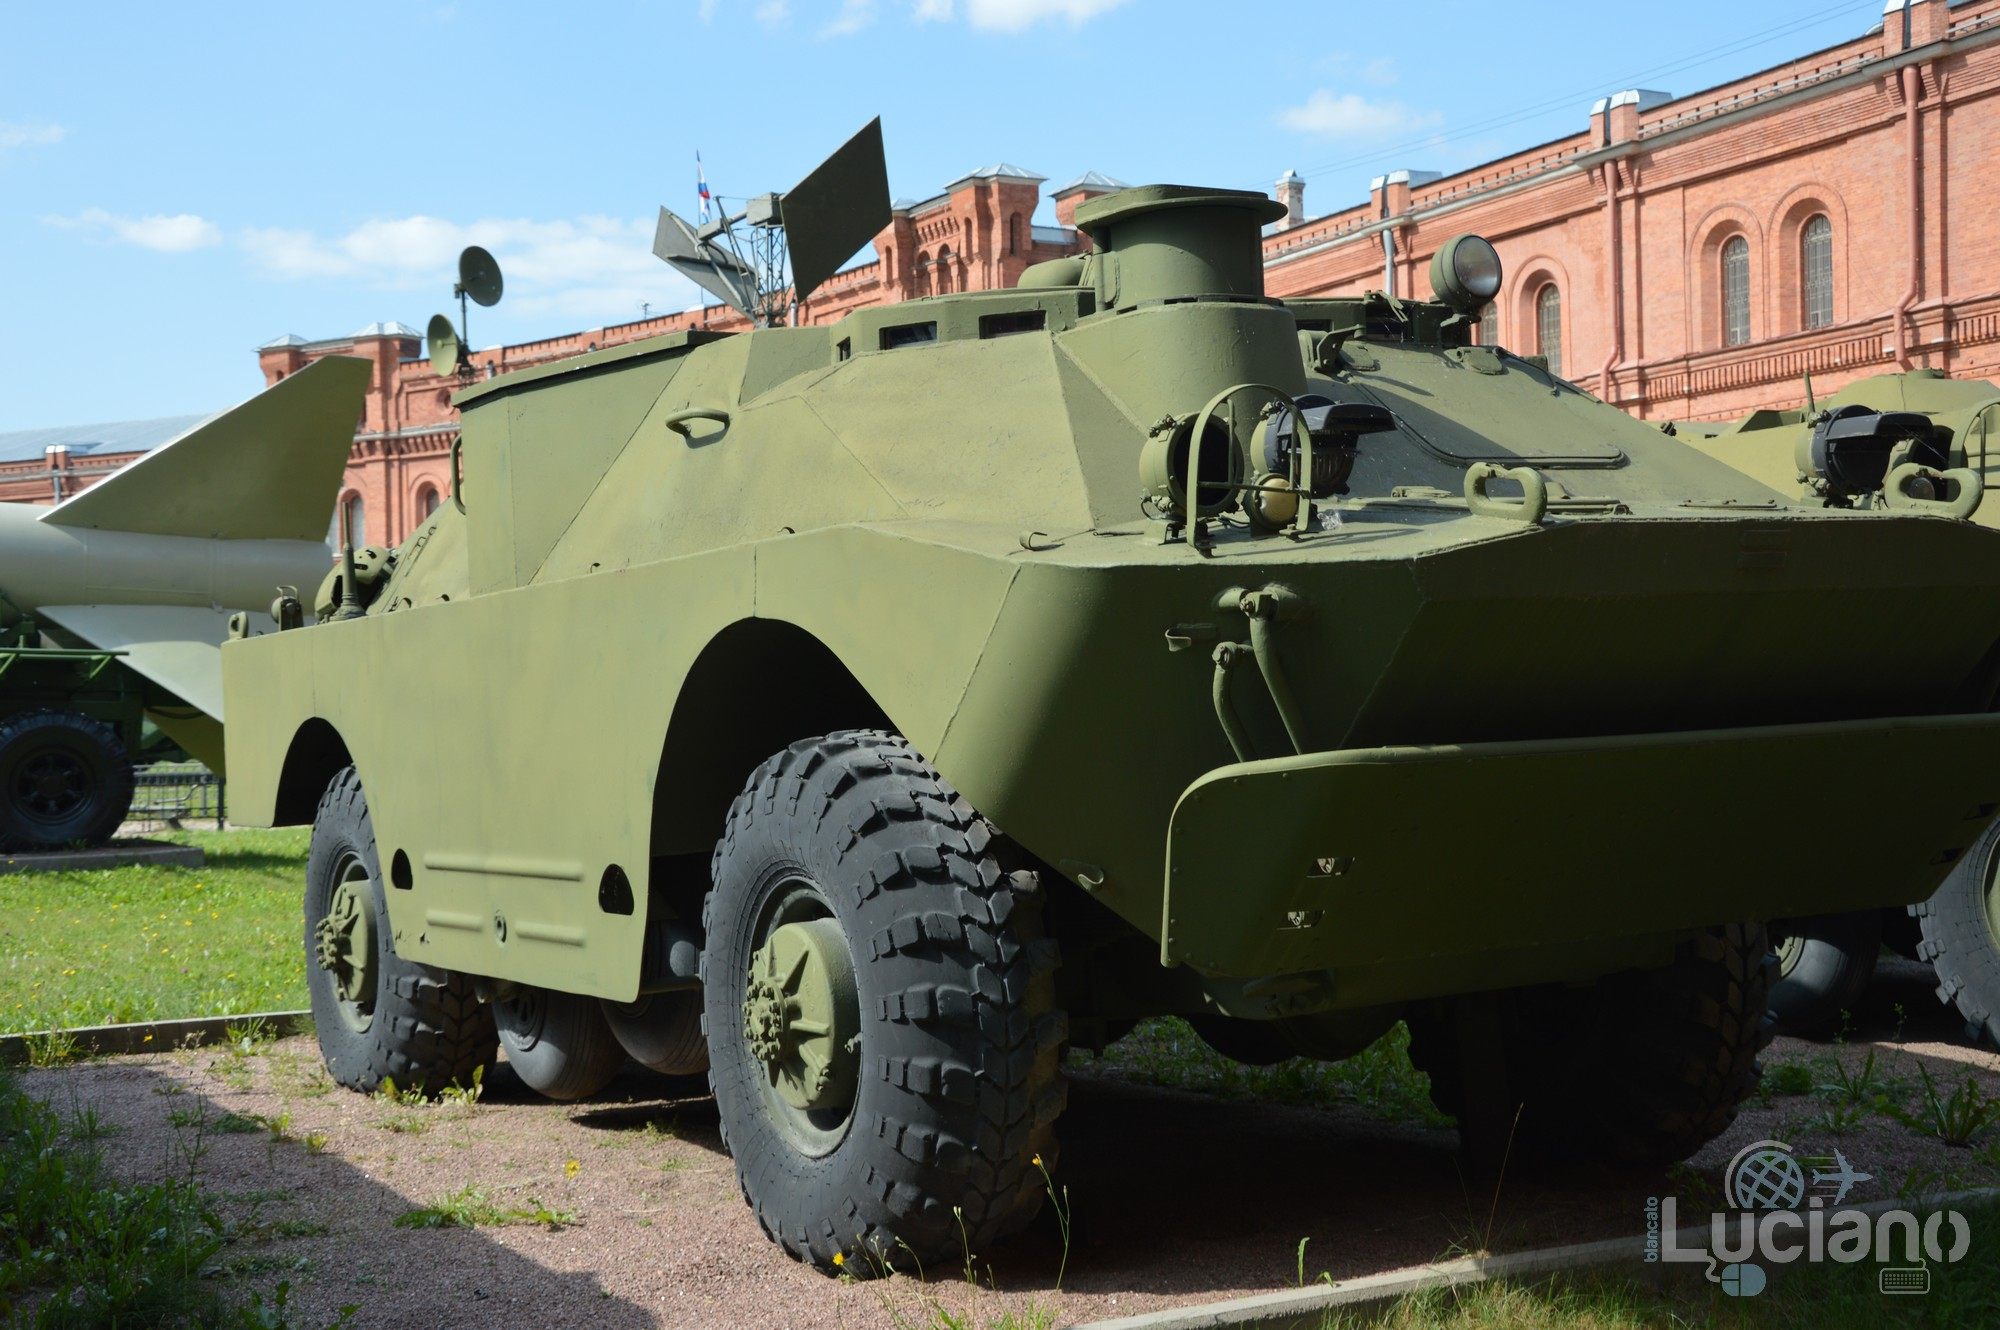 Military-Historical-Museum-of-Artillery-Engineer-and-Signal-Corps-St-Petersburg-Russia-Luciano-Blancato- (36)